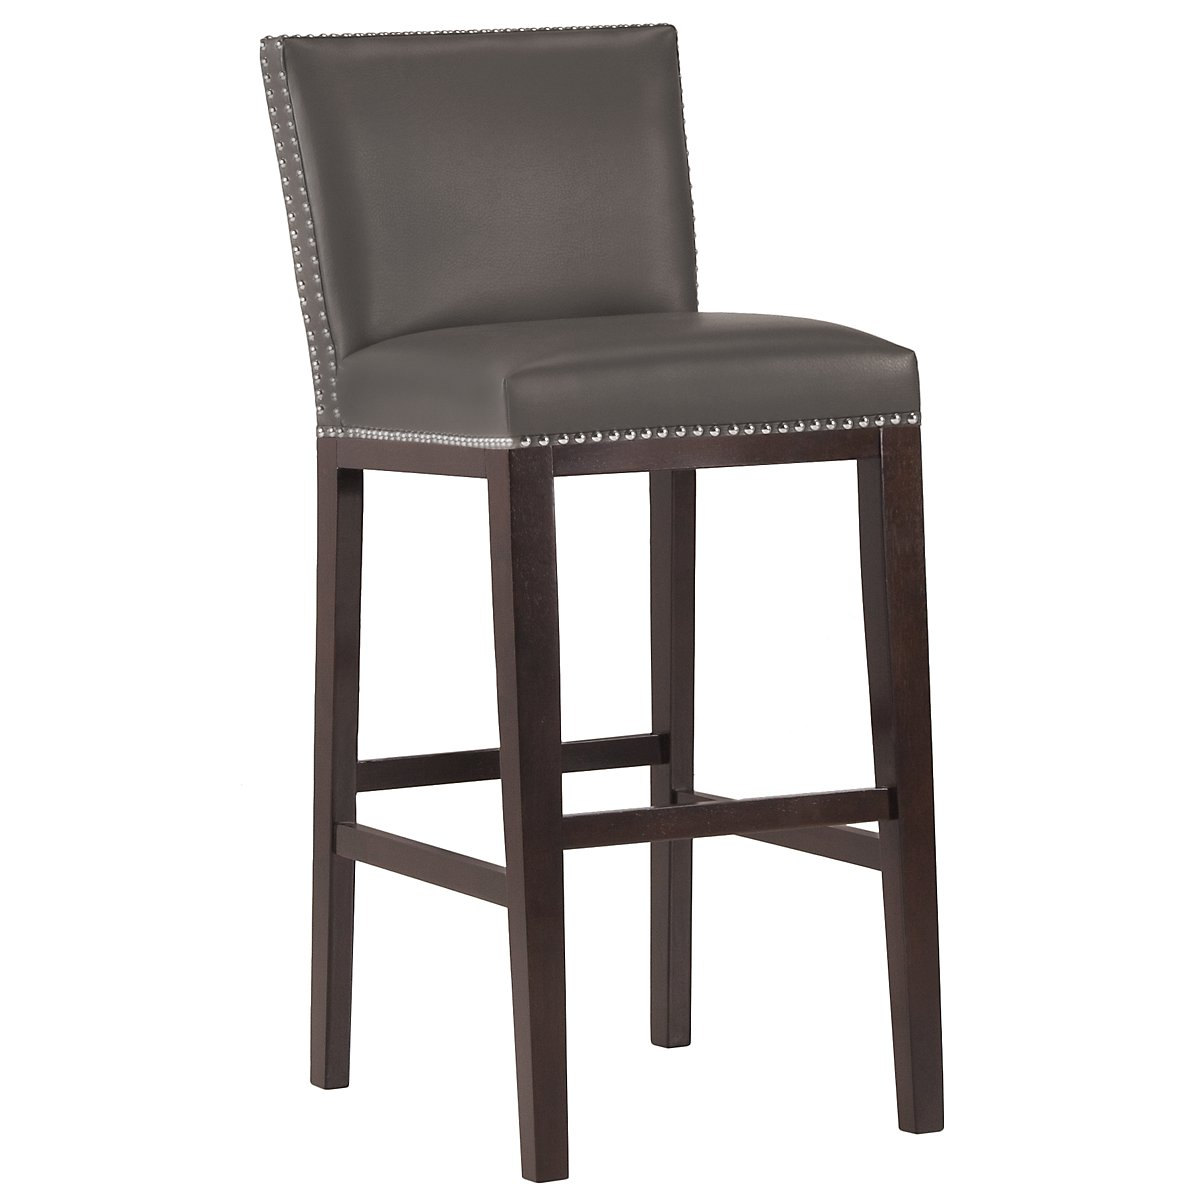 "Tiffany Dk Gray 30"" Bonded Leather Barstool"